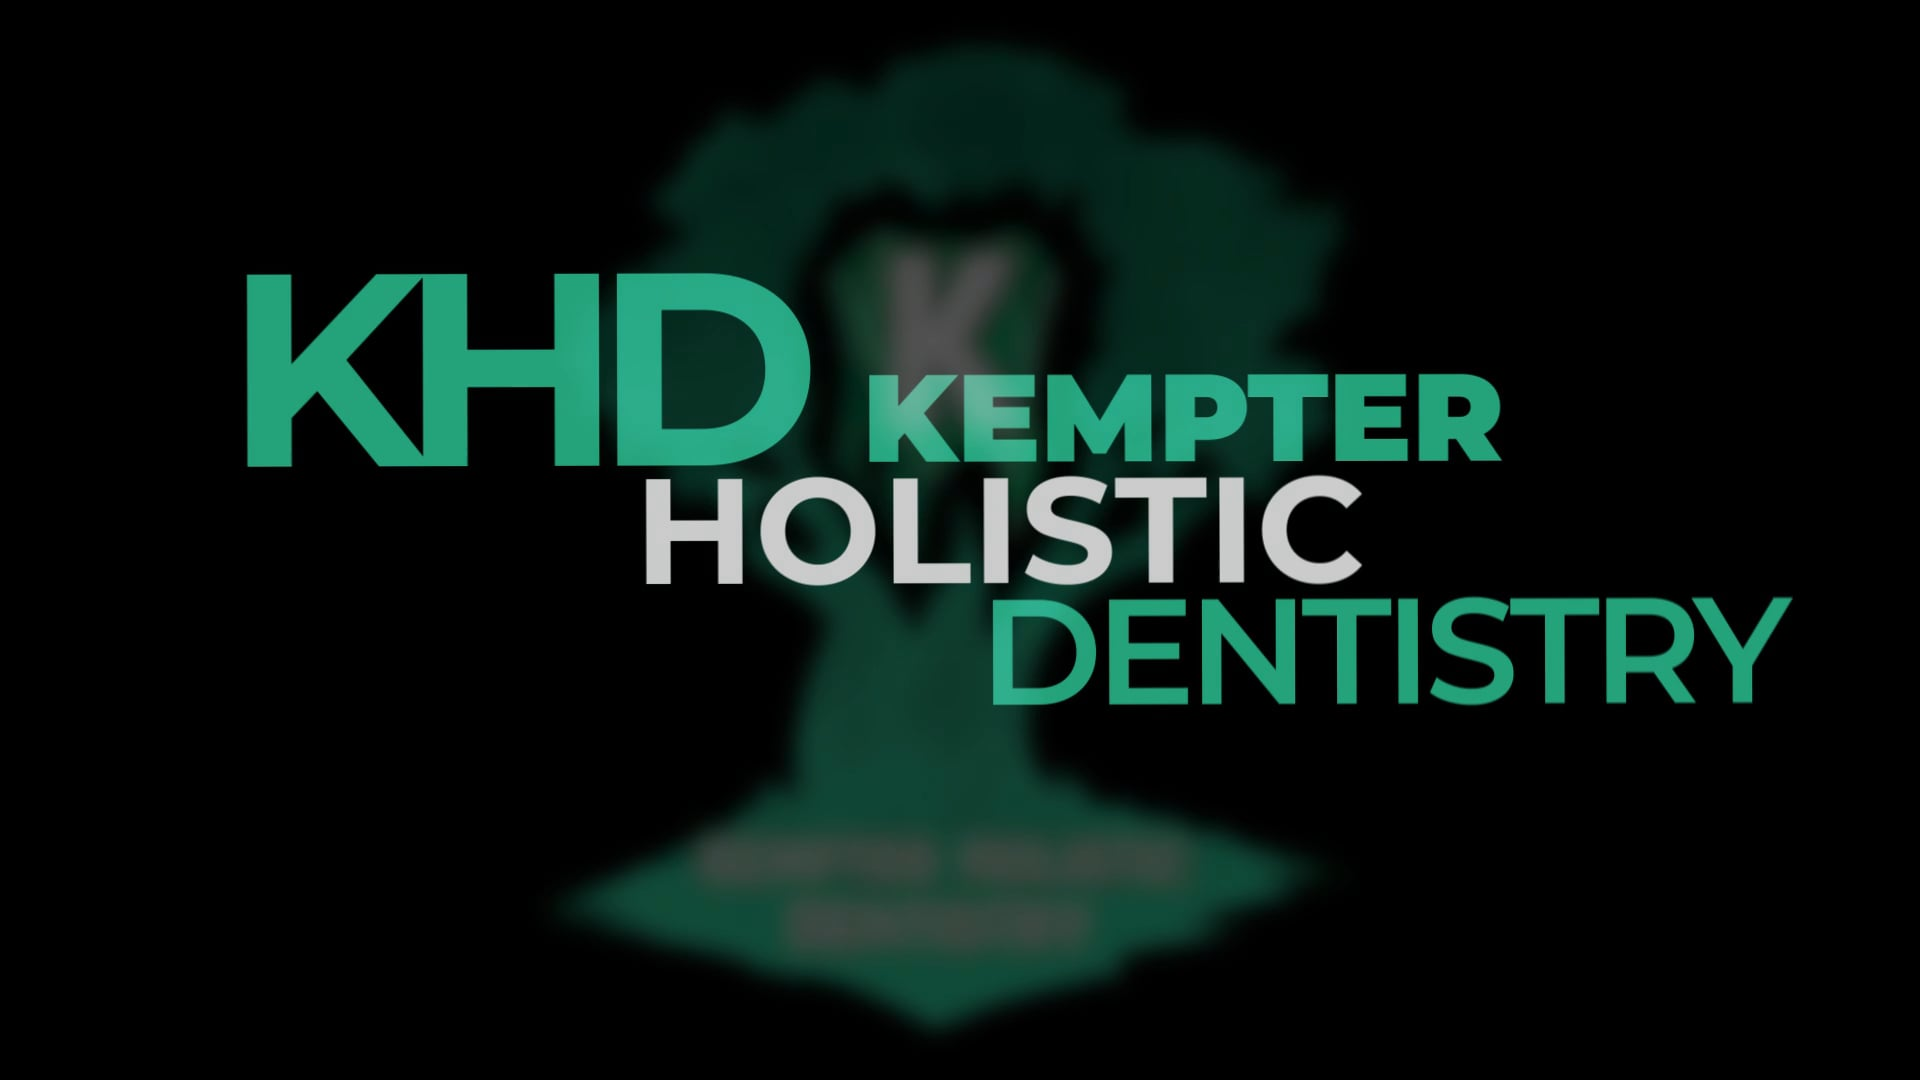 WhatIsHolisticDentistry